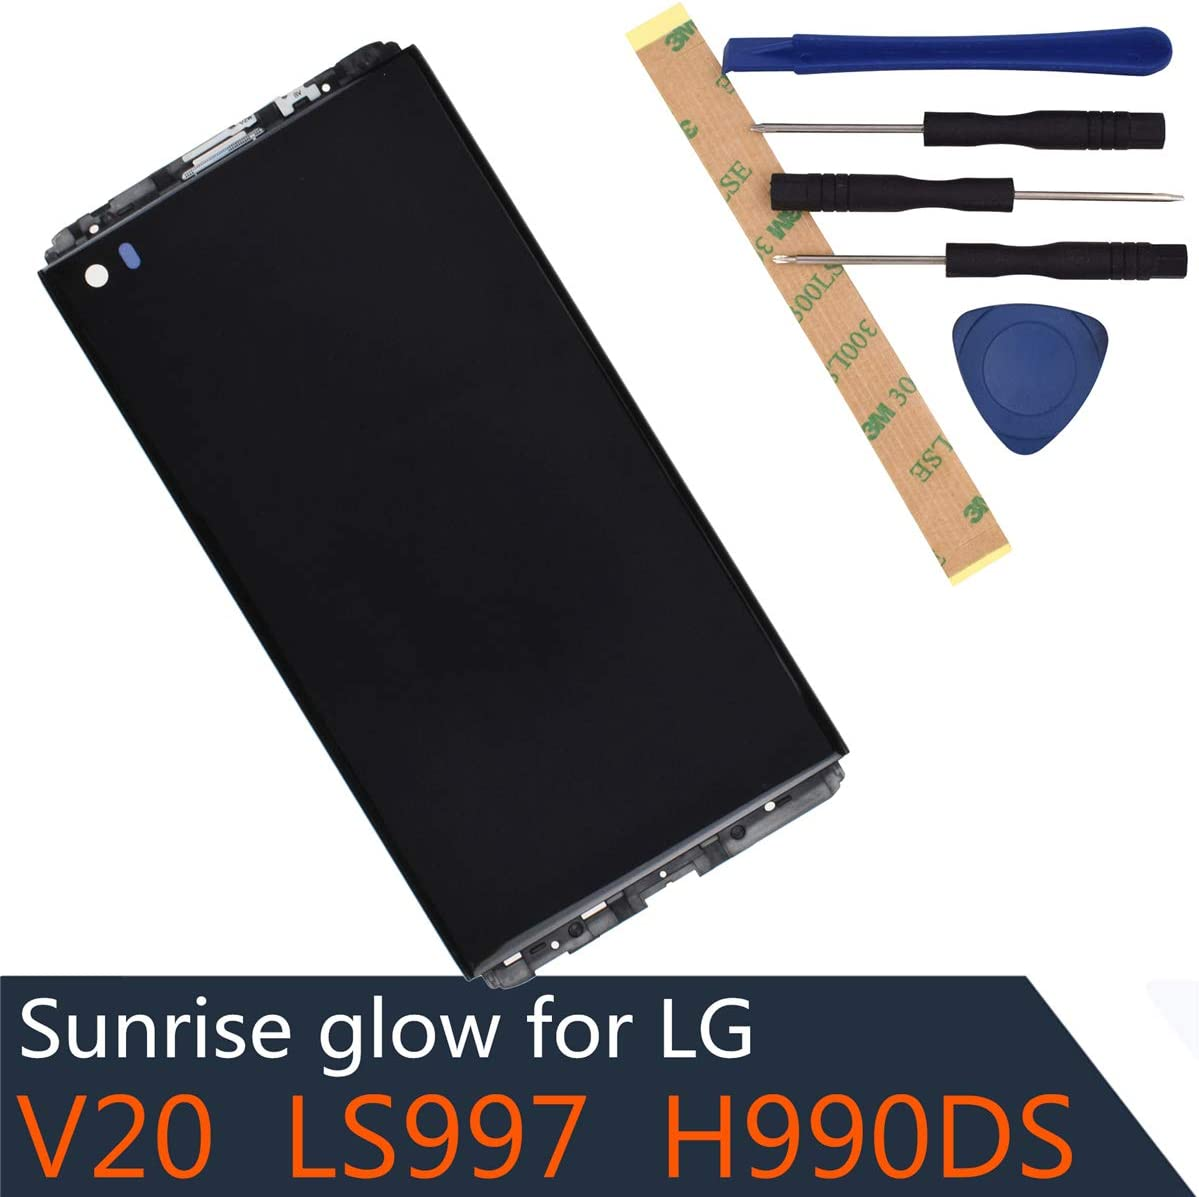 H910 LCD Display Digitizer Touch Screen Assembly Compatible with LG V20 LS997 US996 VS995 H990T H990DS H990N with Frame